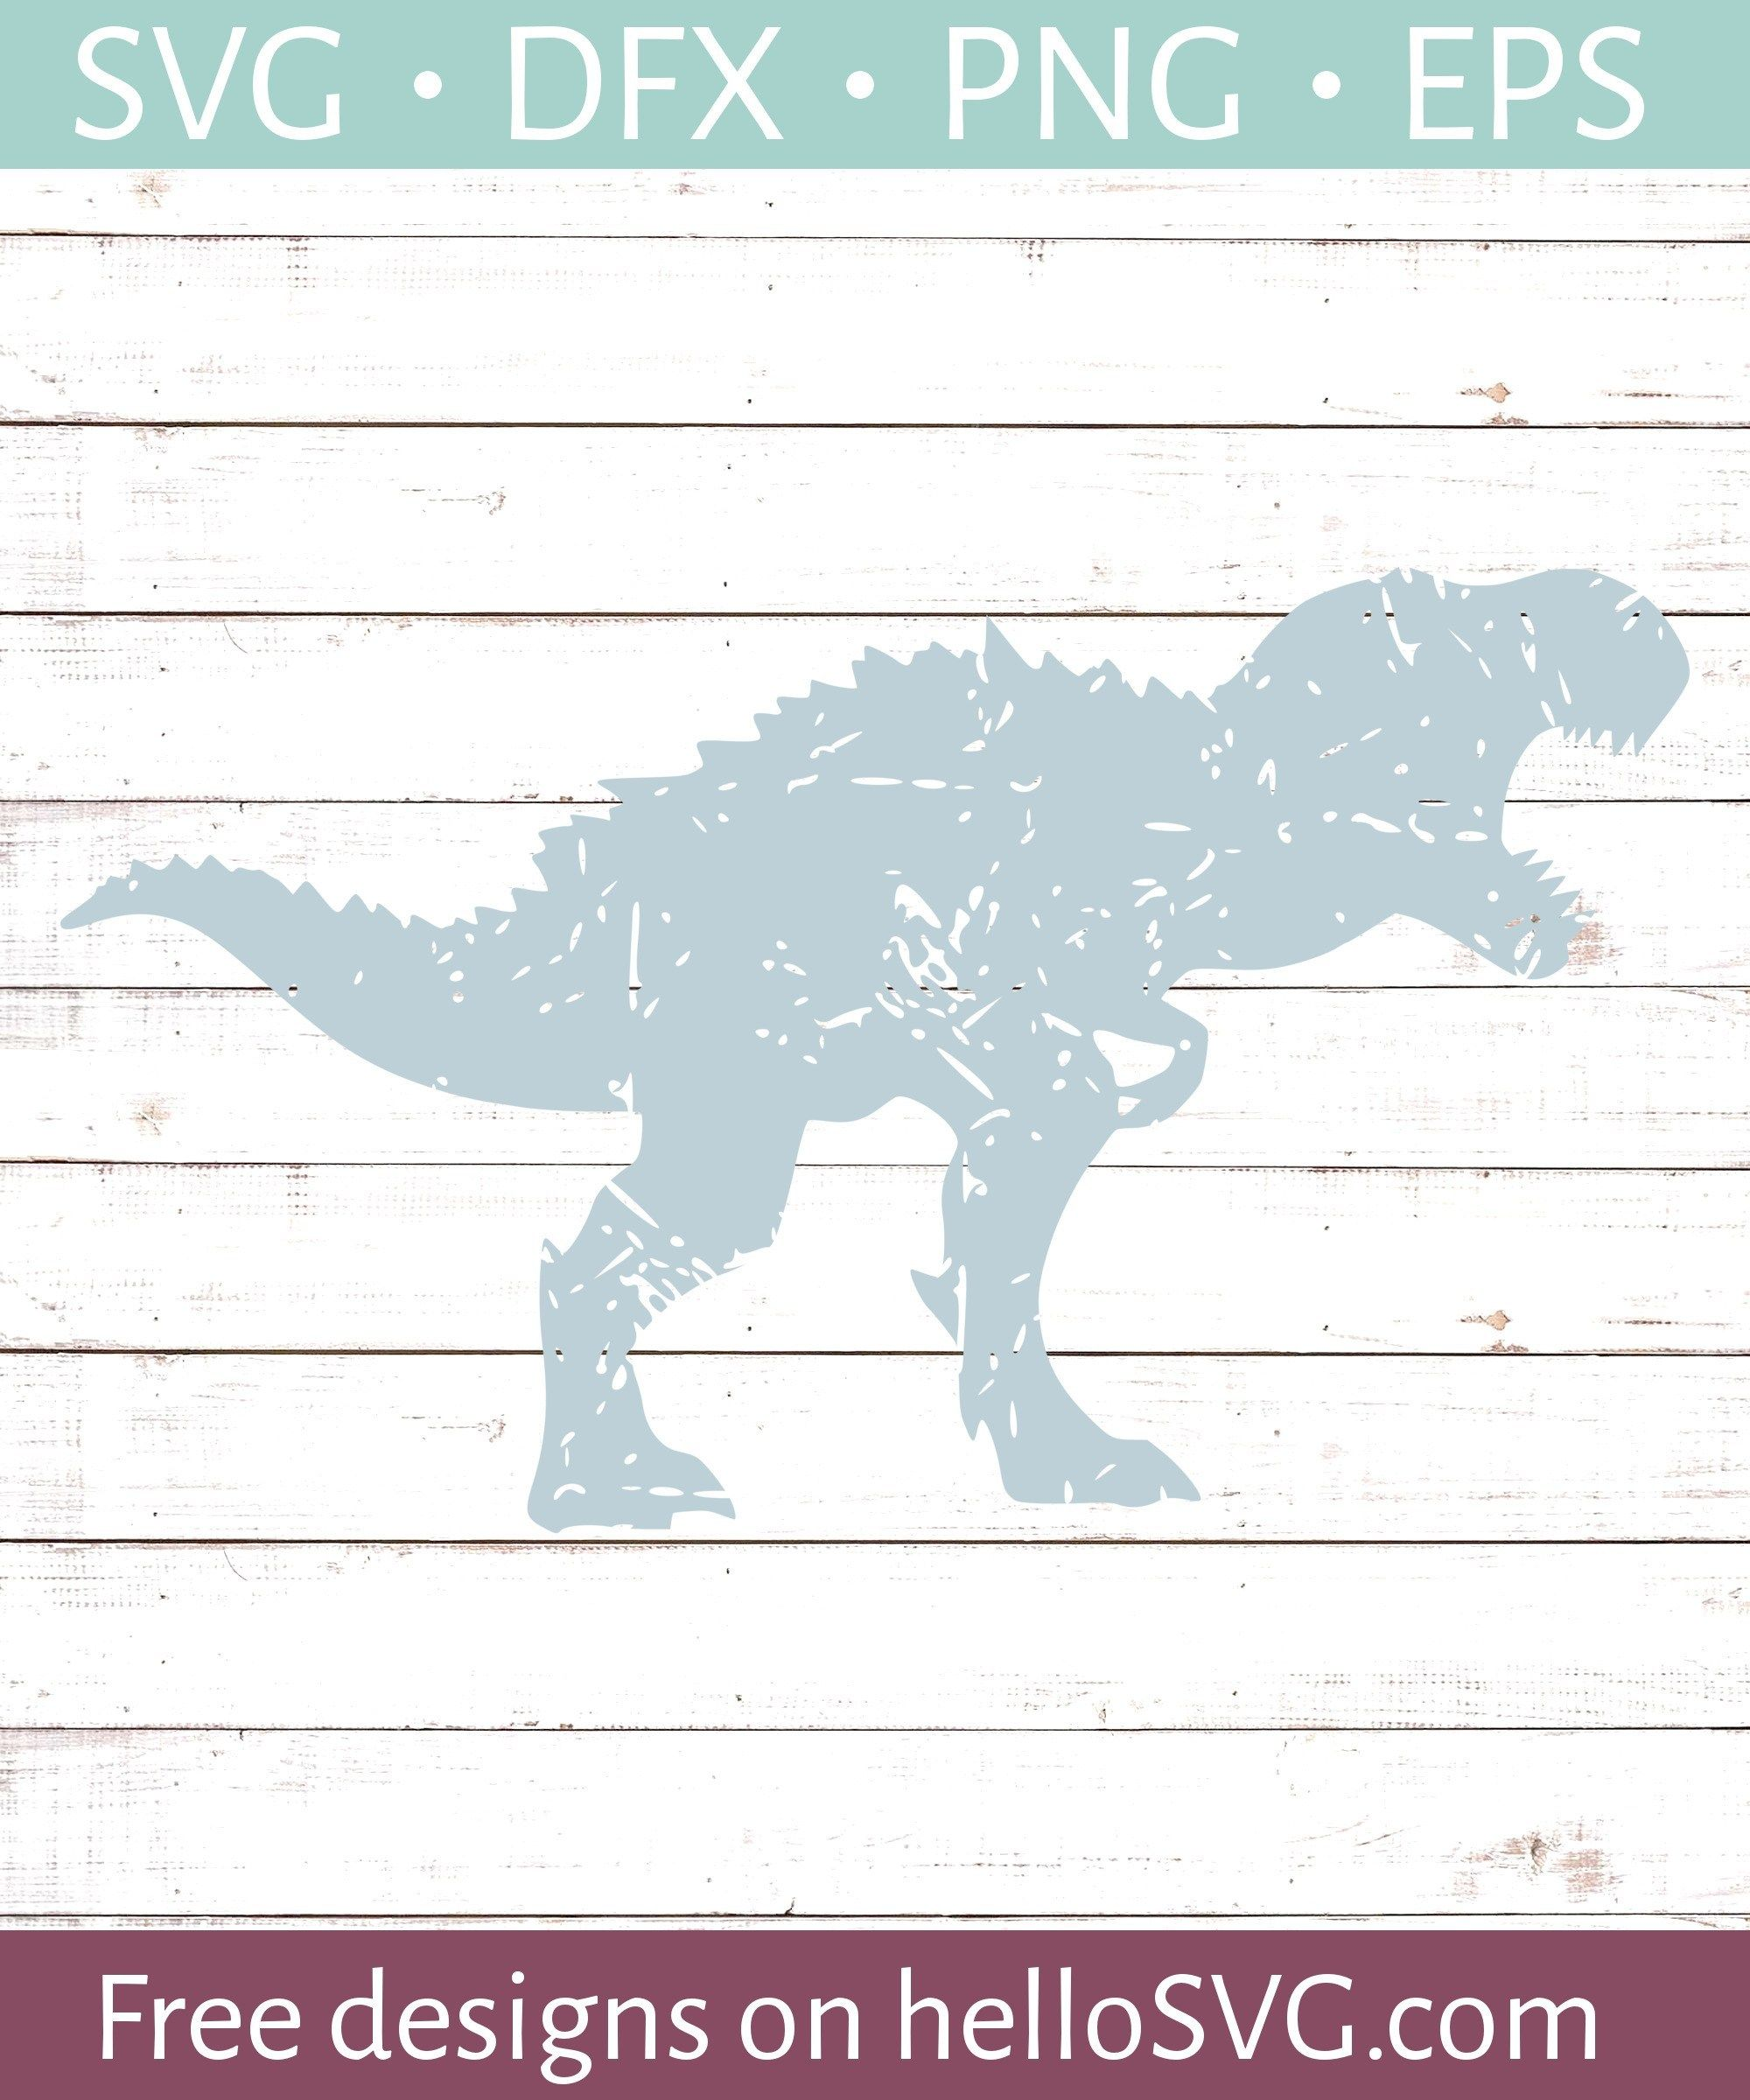 Trex Dinosaur - Distressed SVG - Free SVG files | HelloSVG com